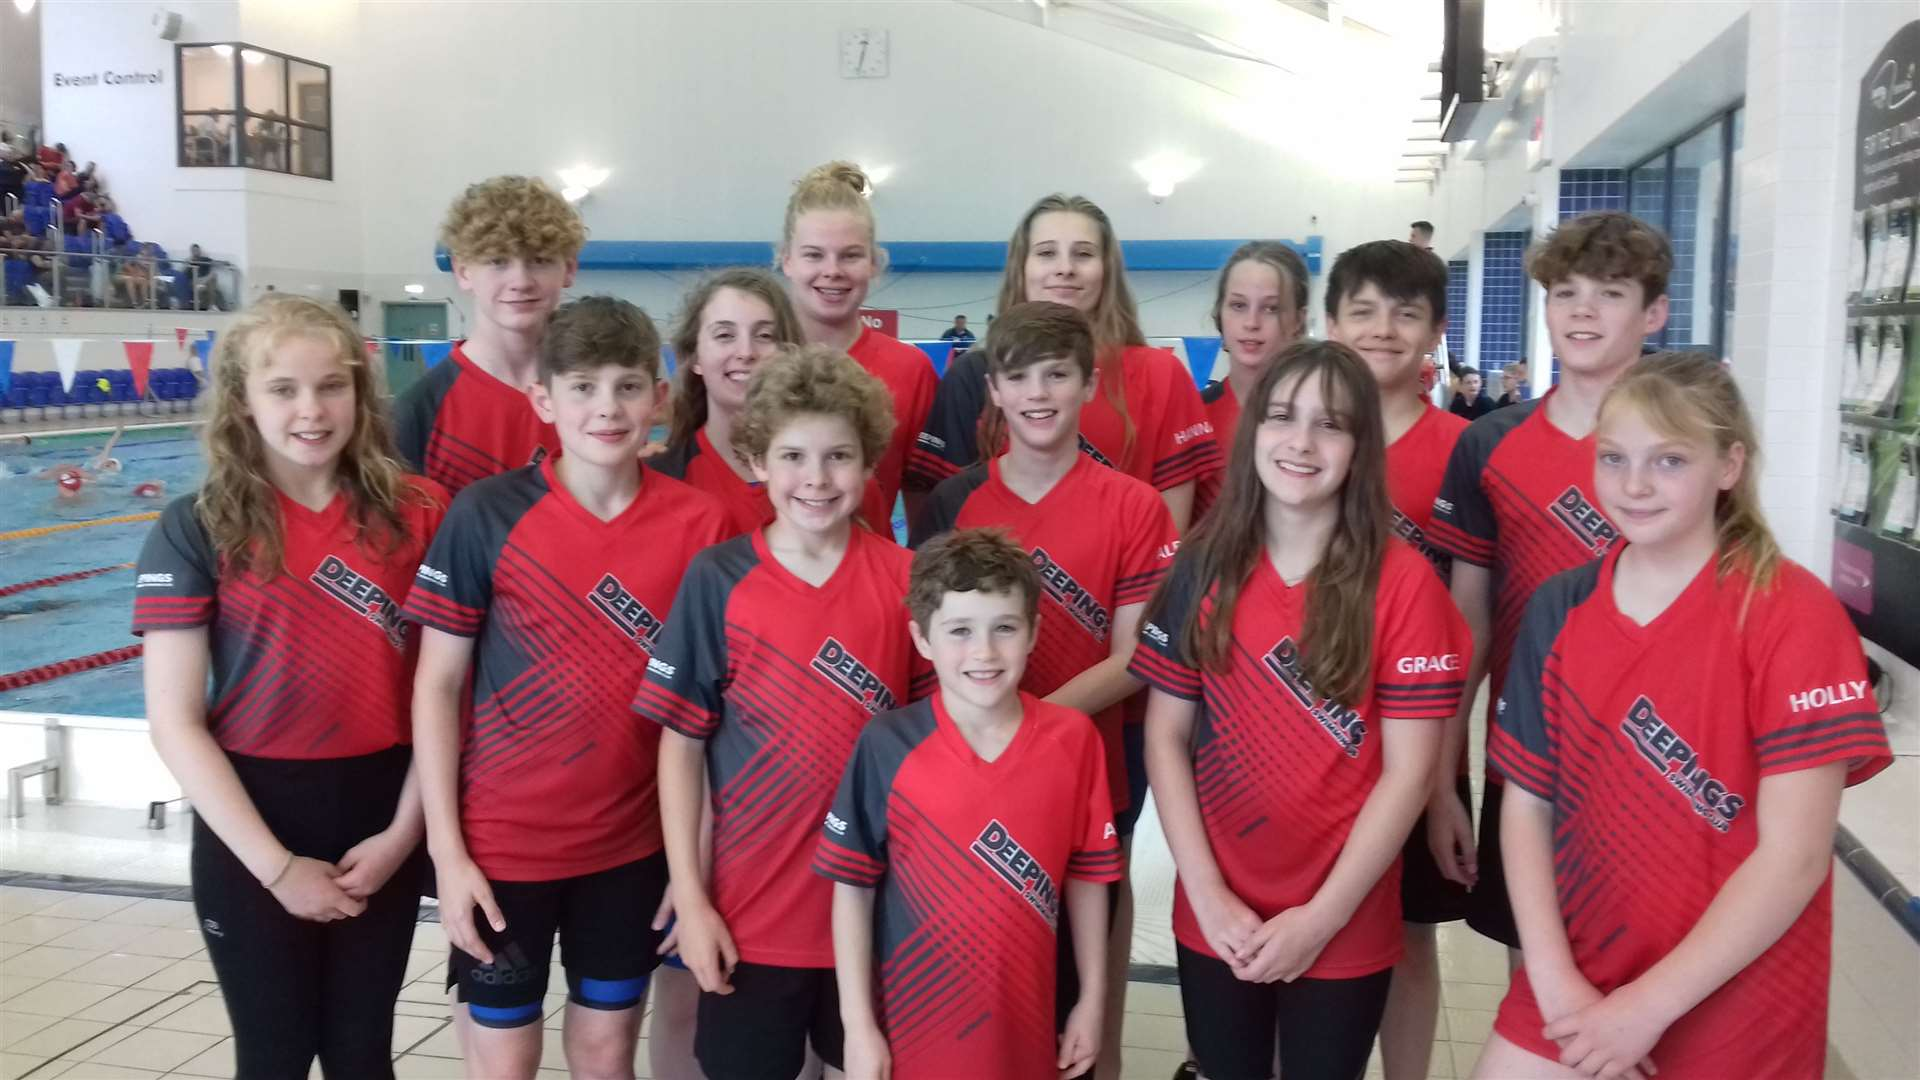 The Deepings squad won 44 medals, including 10 golds, at the Chesterfield Summer Splash. (13896084)